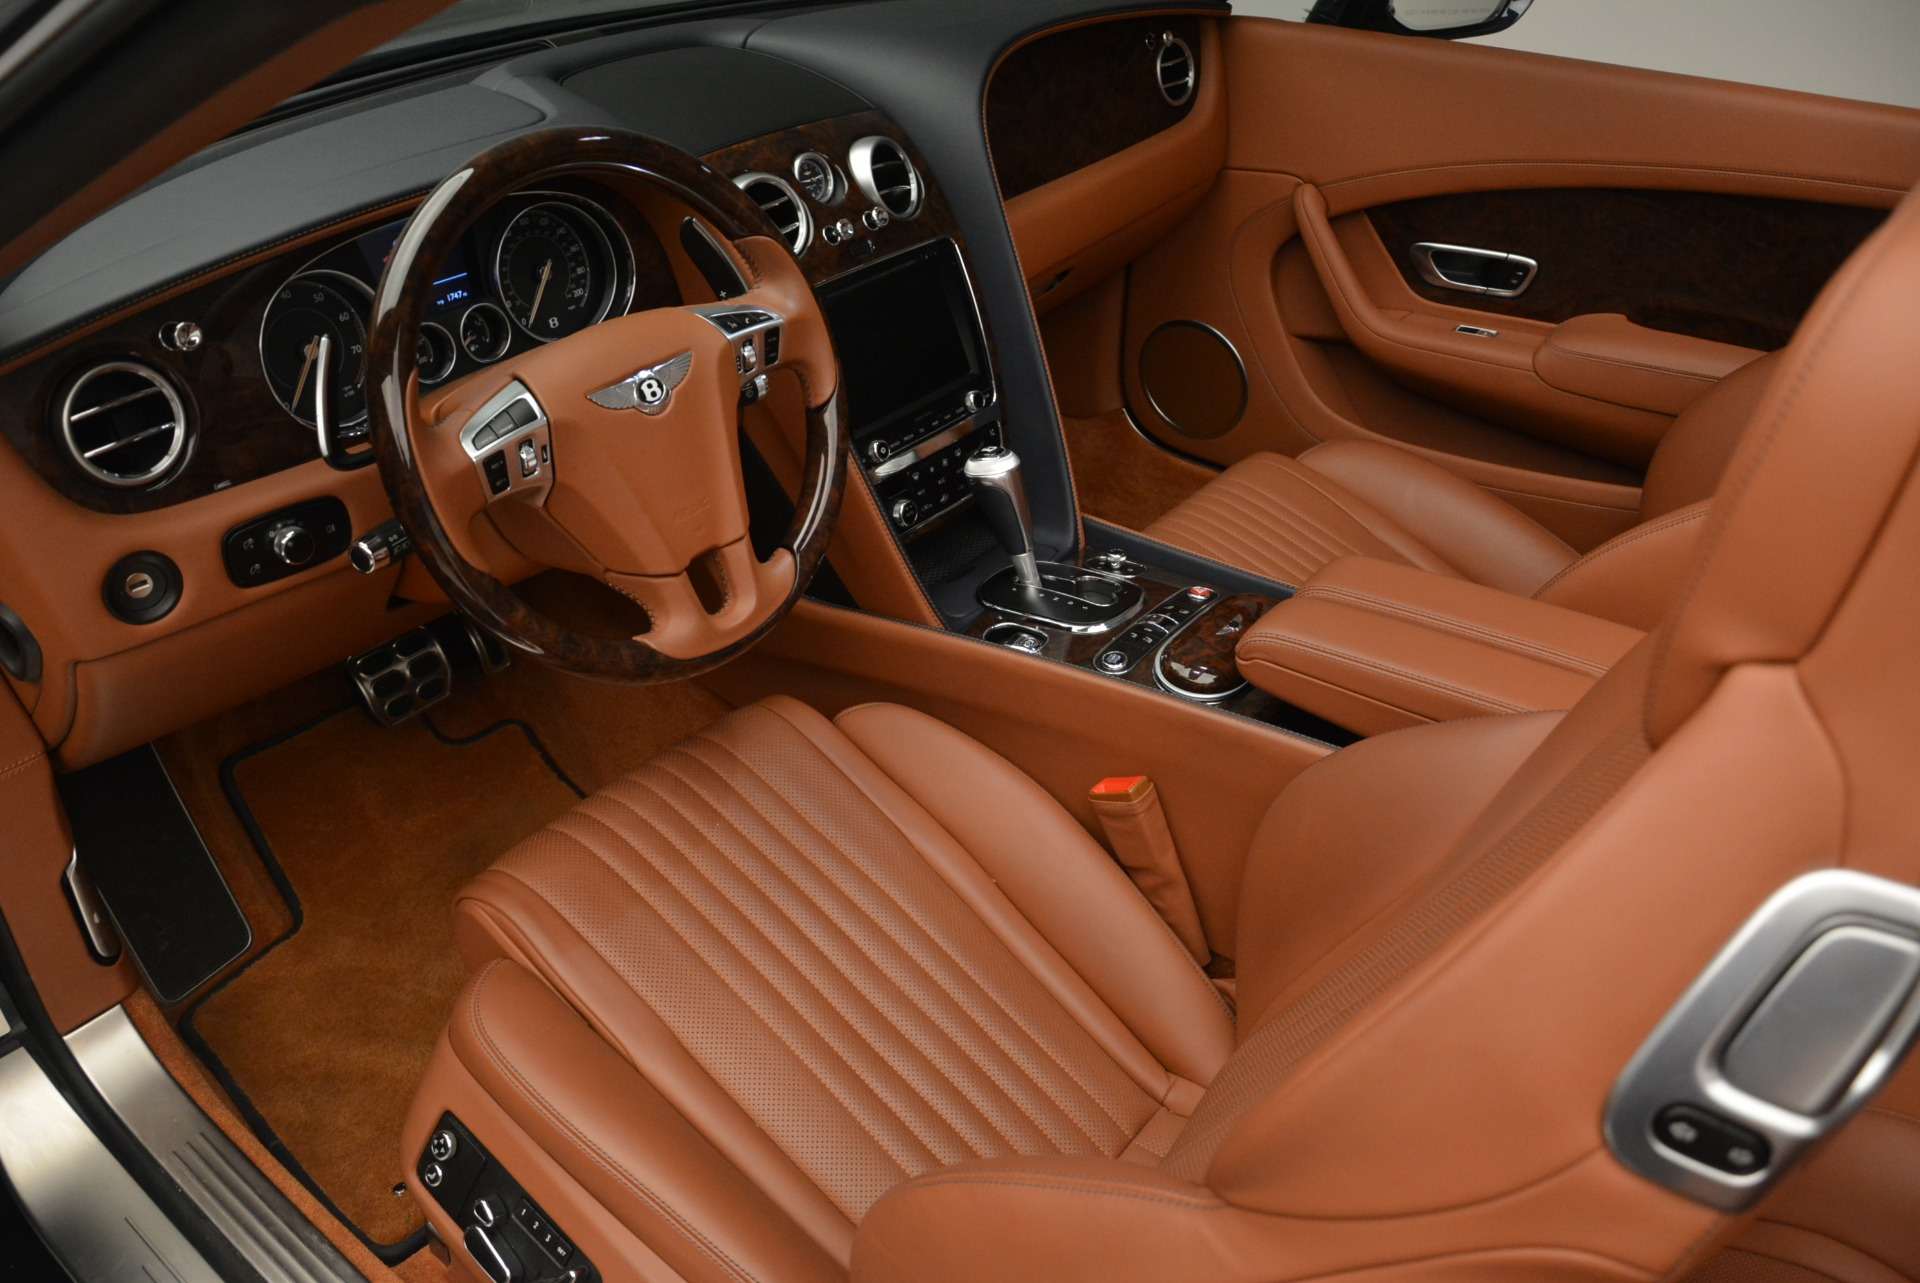 Used 2016 Bentley Continental GT V8 S For Sale In Westport, CT 2473_p22